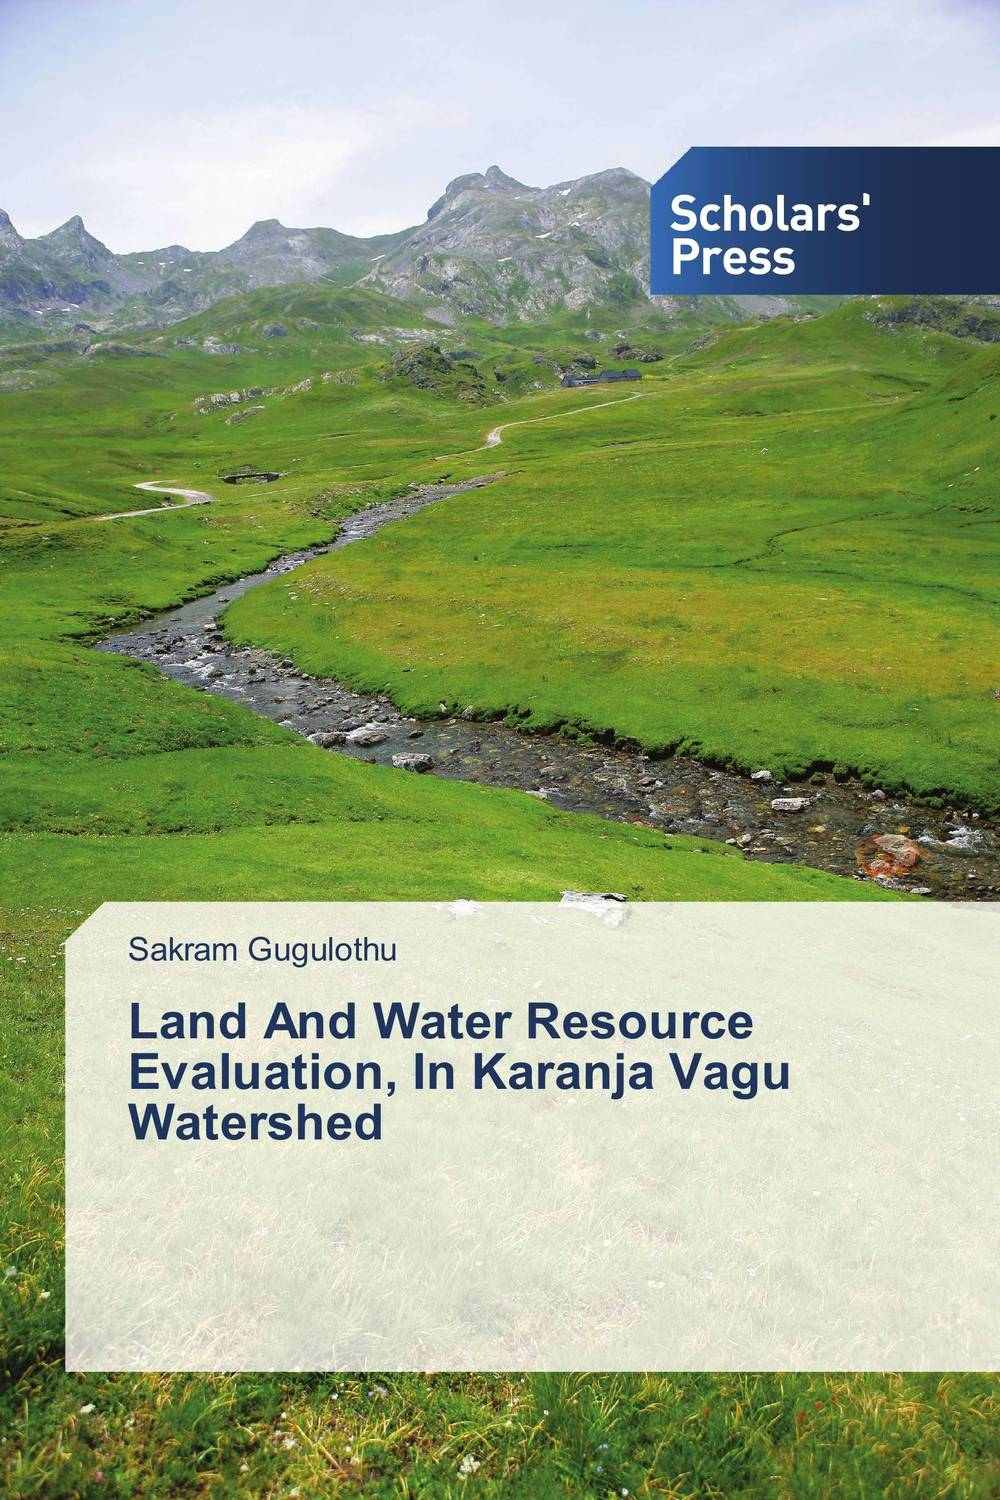 Land And Water Resource Evaluation, In Karanja Vagu Watershed bride of the water god v 3